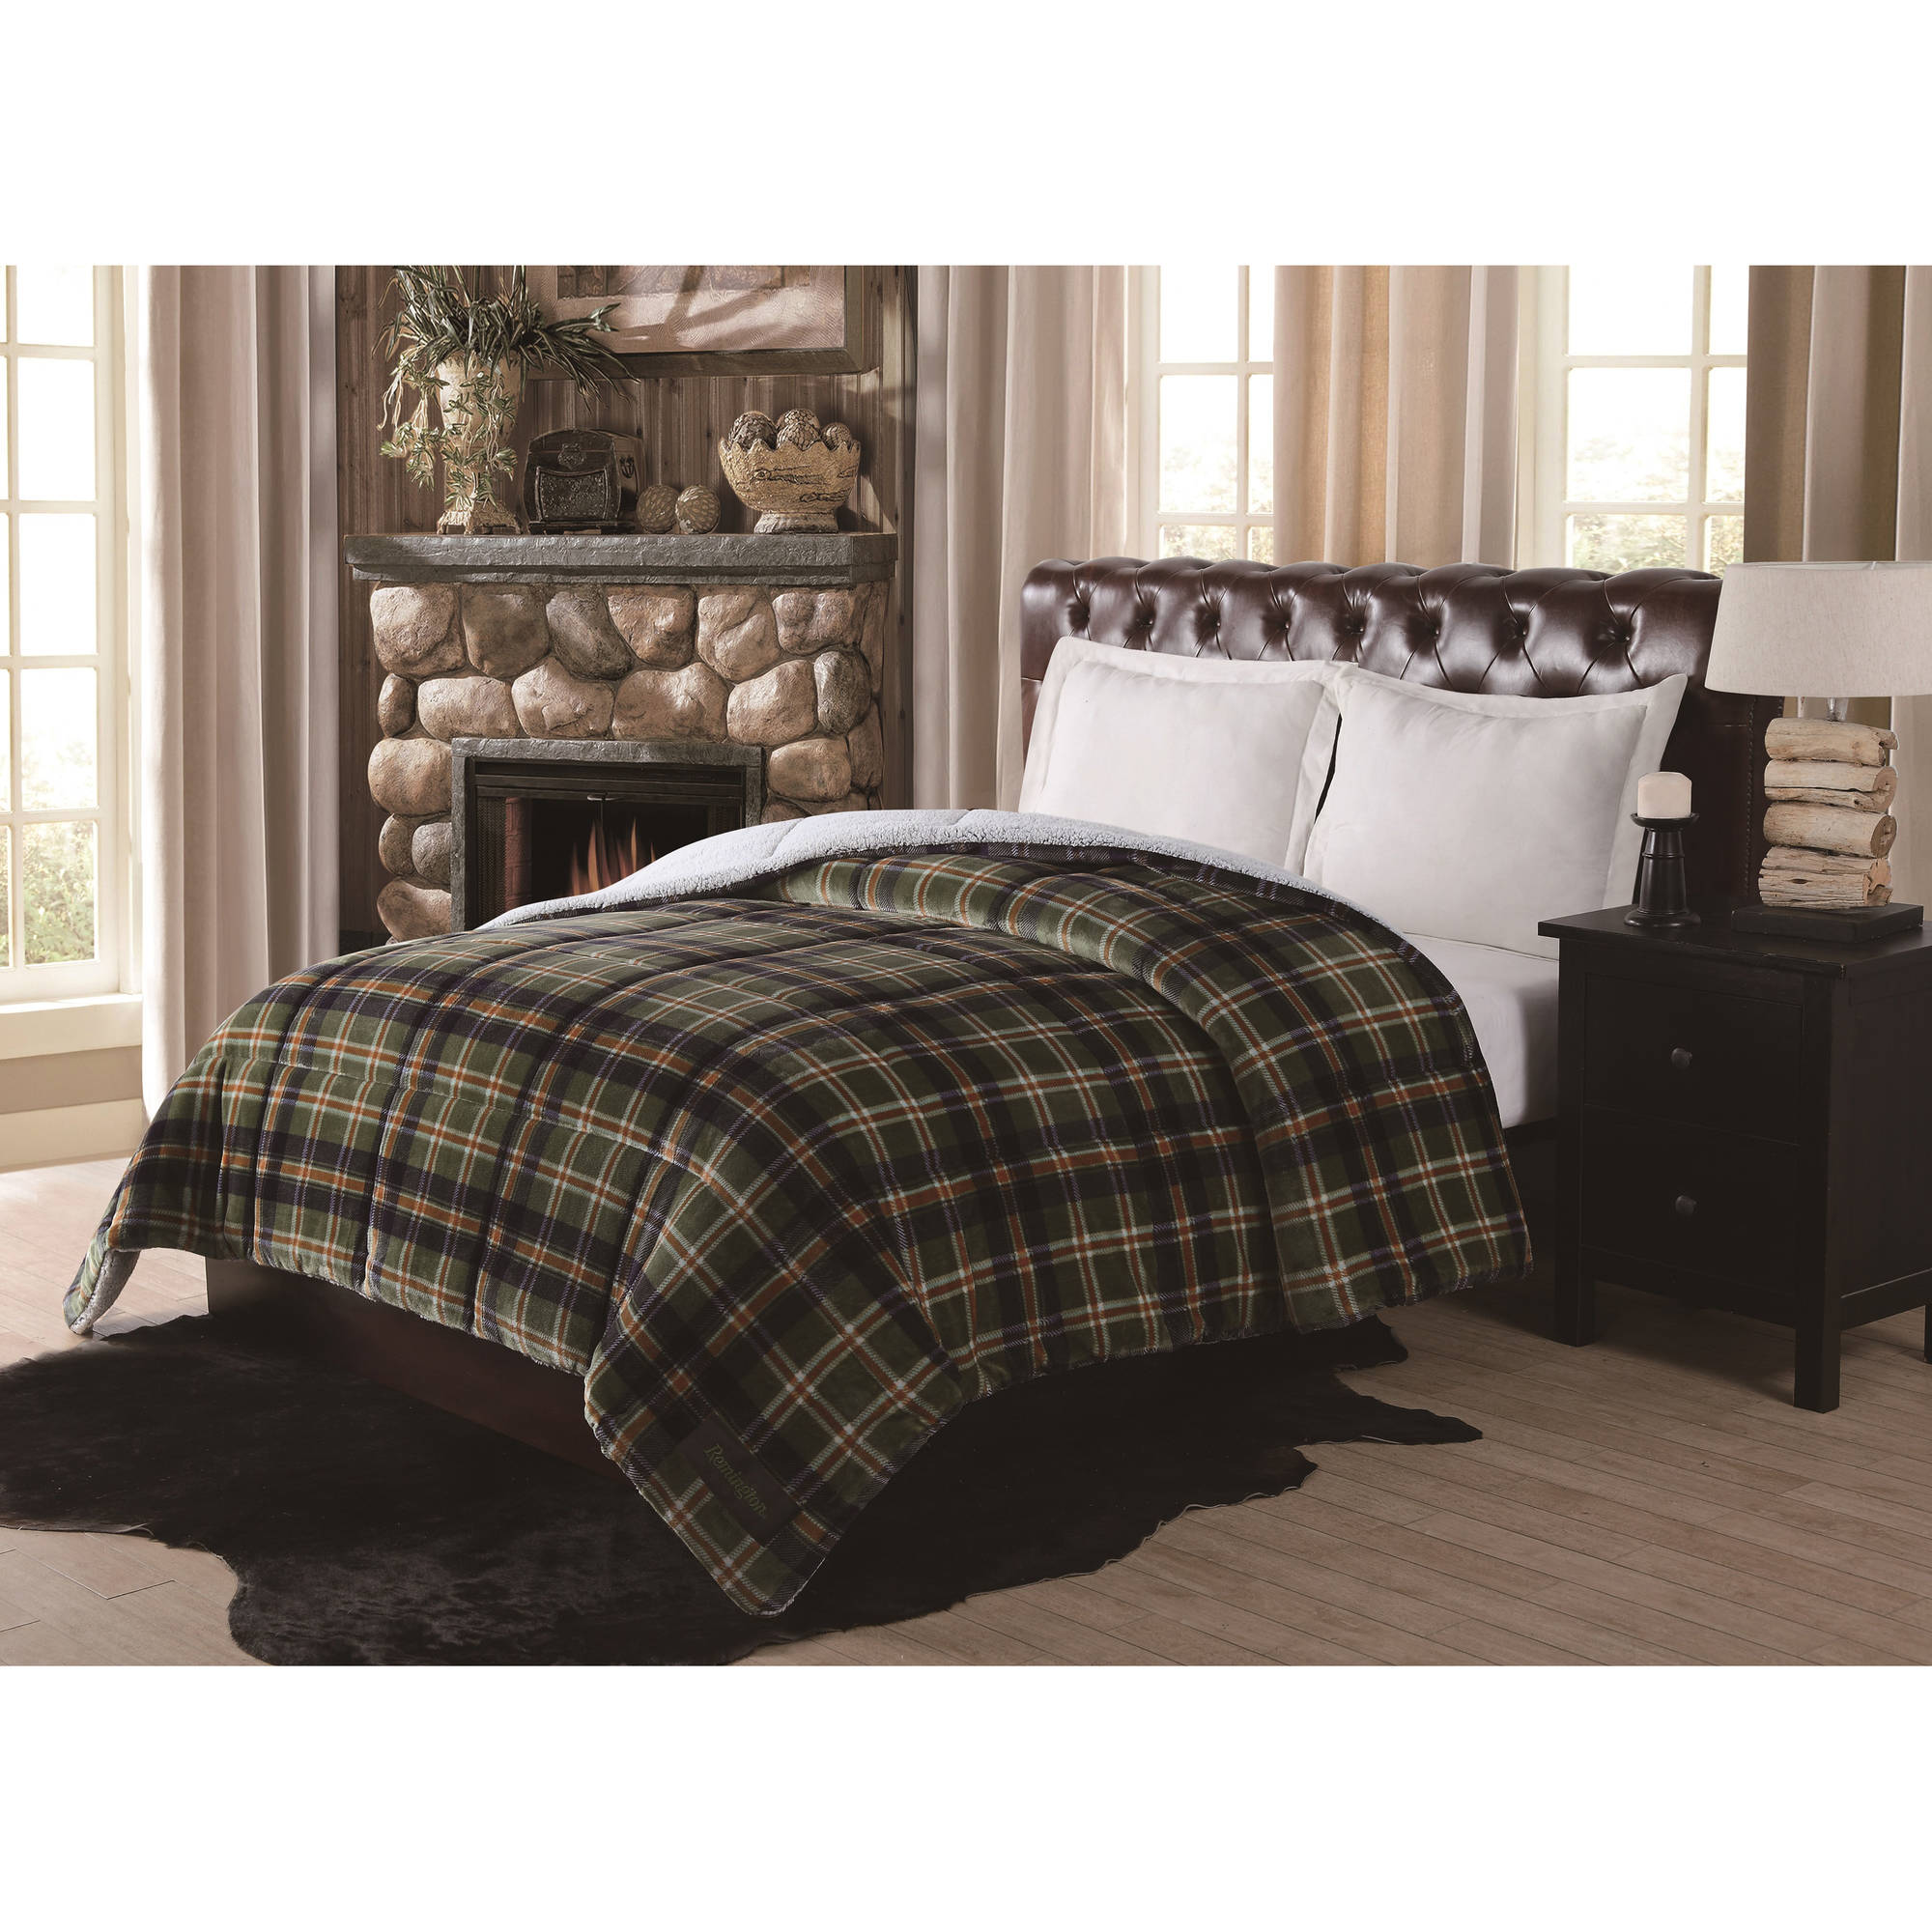 blue cheap quotations set guides full plaid get shopping deals green par find comforter izod queen